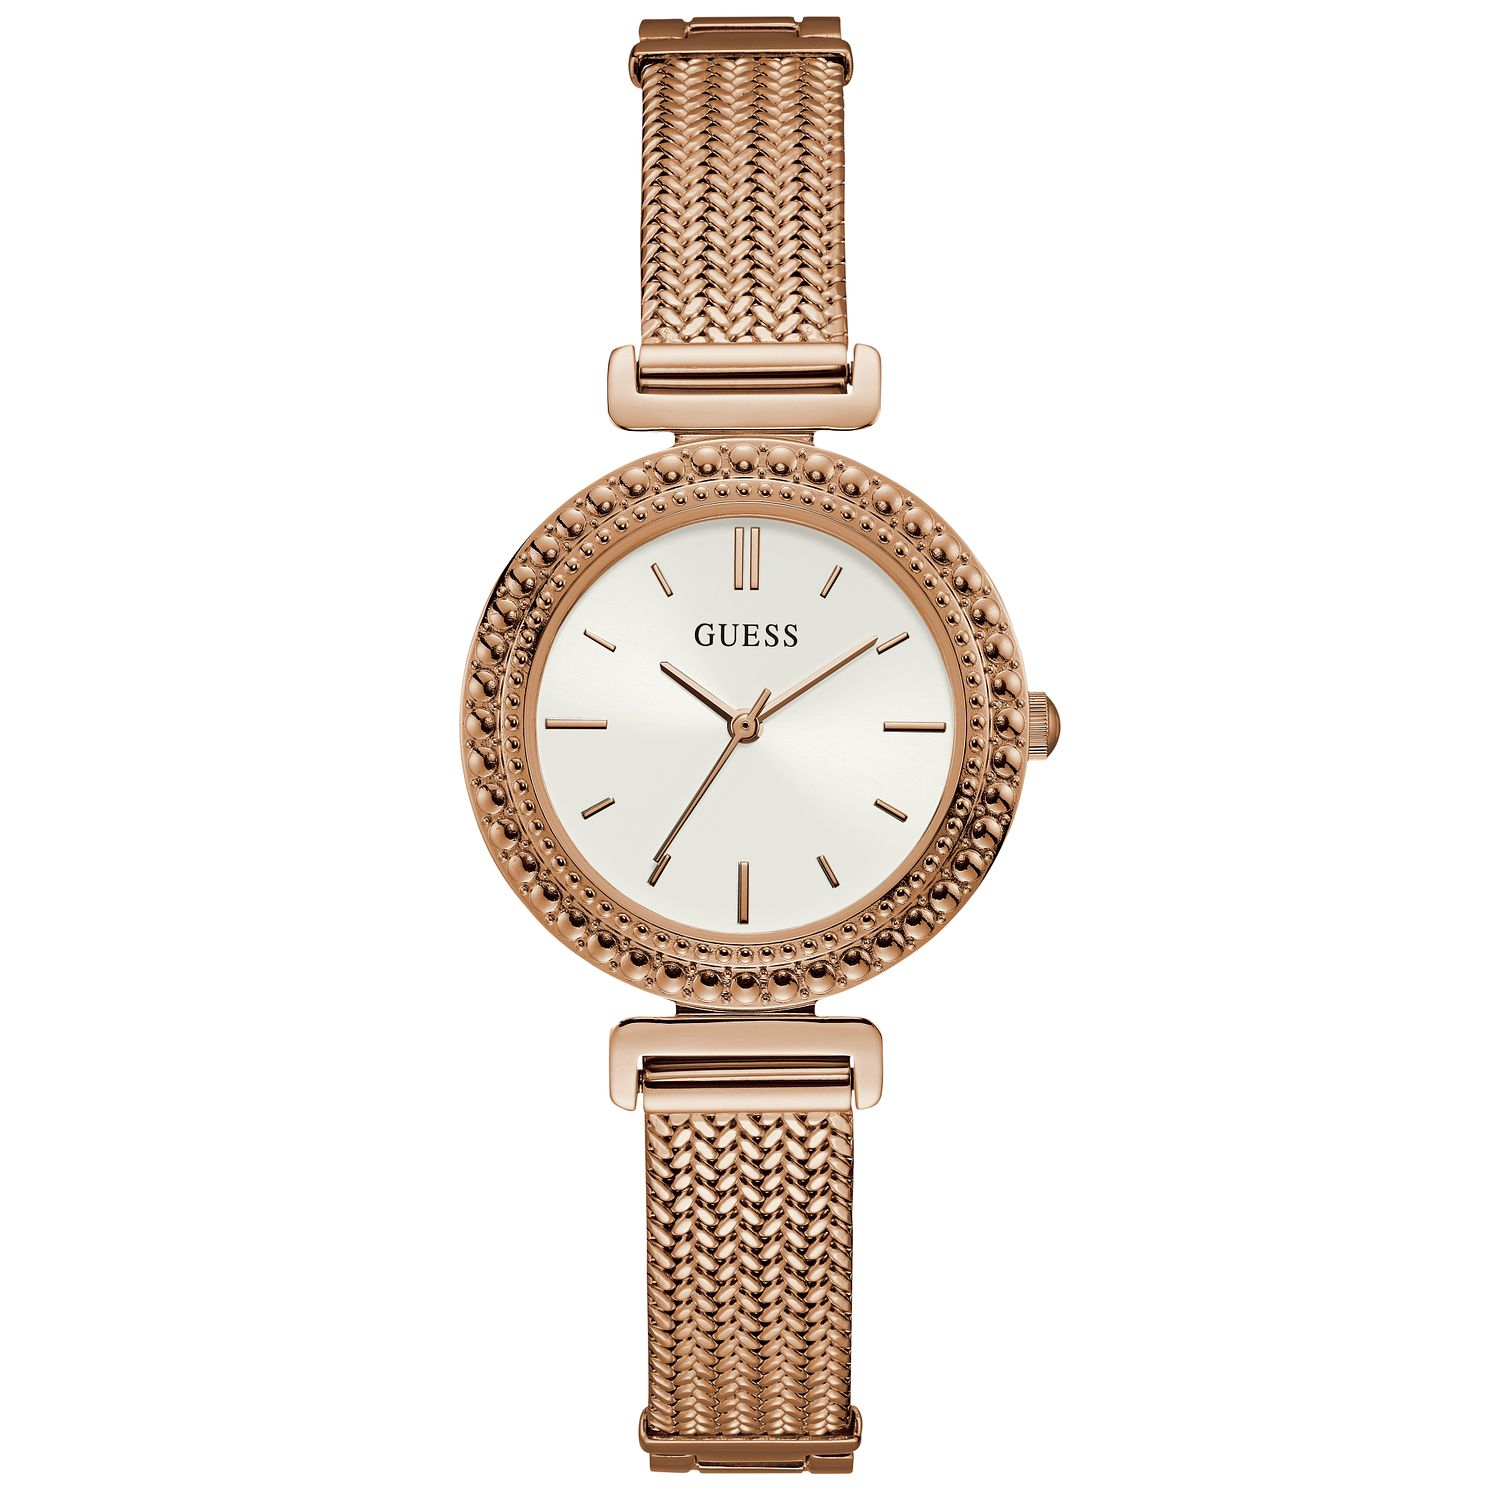 Guess Ladies' Rose Gold Tone Mesh Bracelet Watch - Product number 9654801